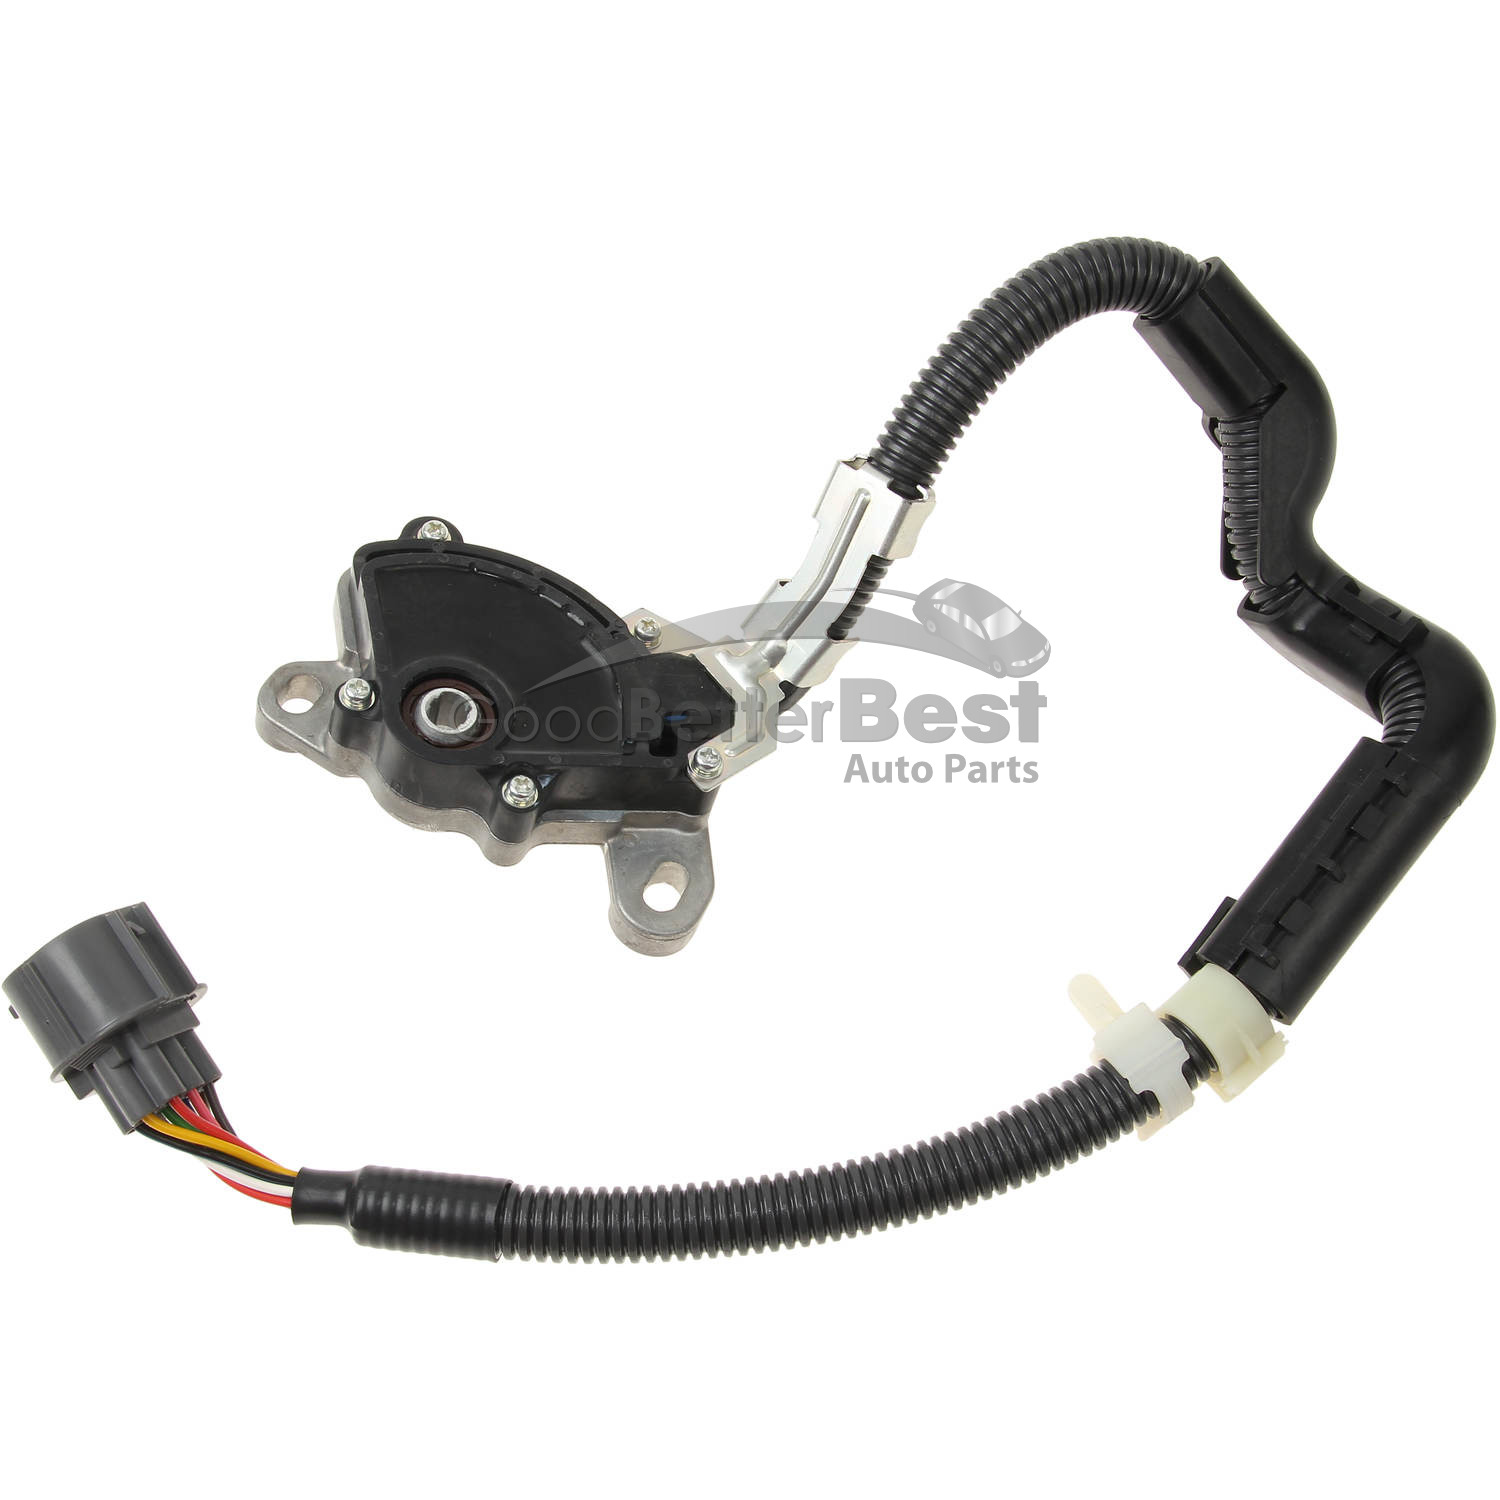 Honda Pilot Supercharger: New Genuine Neutral Safety Switch 28900P7W023 For Honda CL